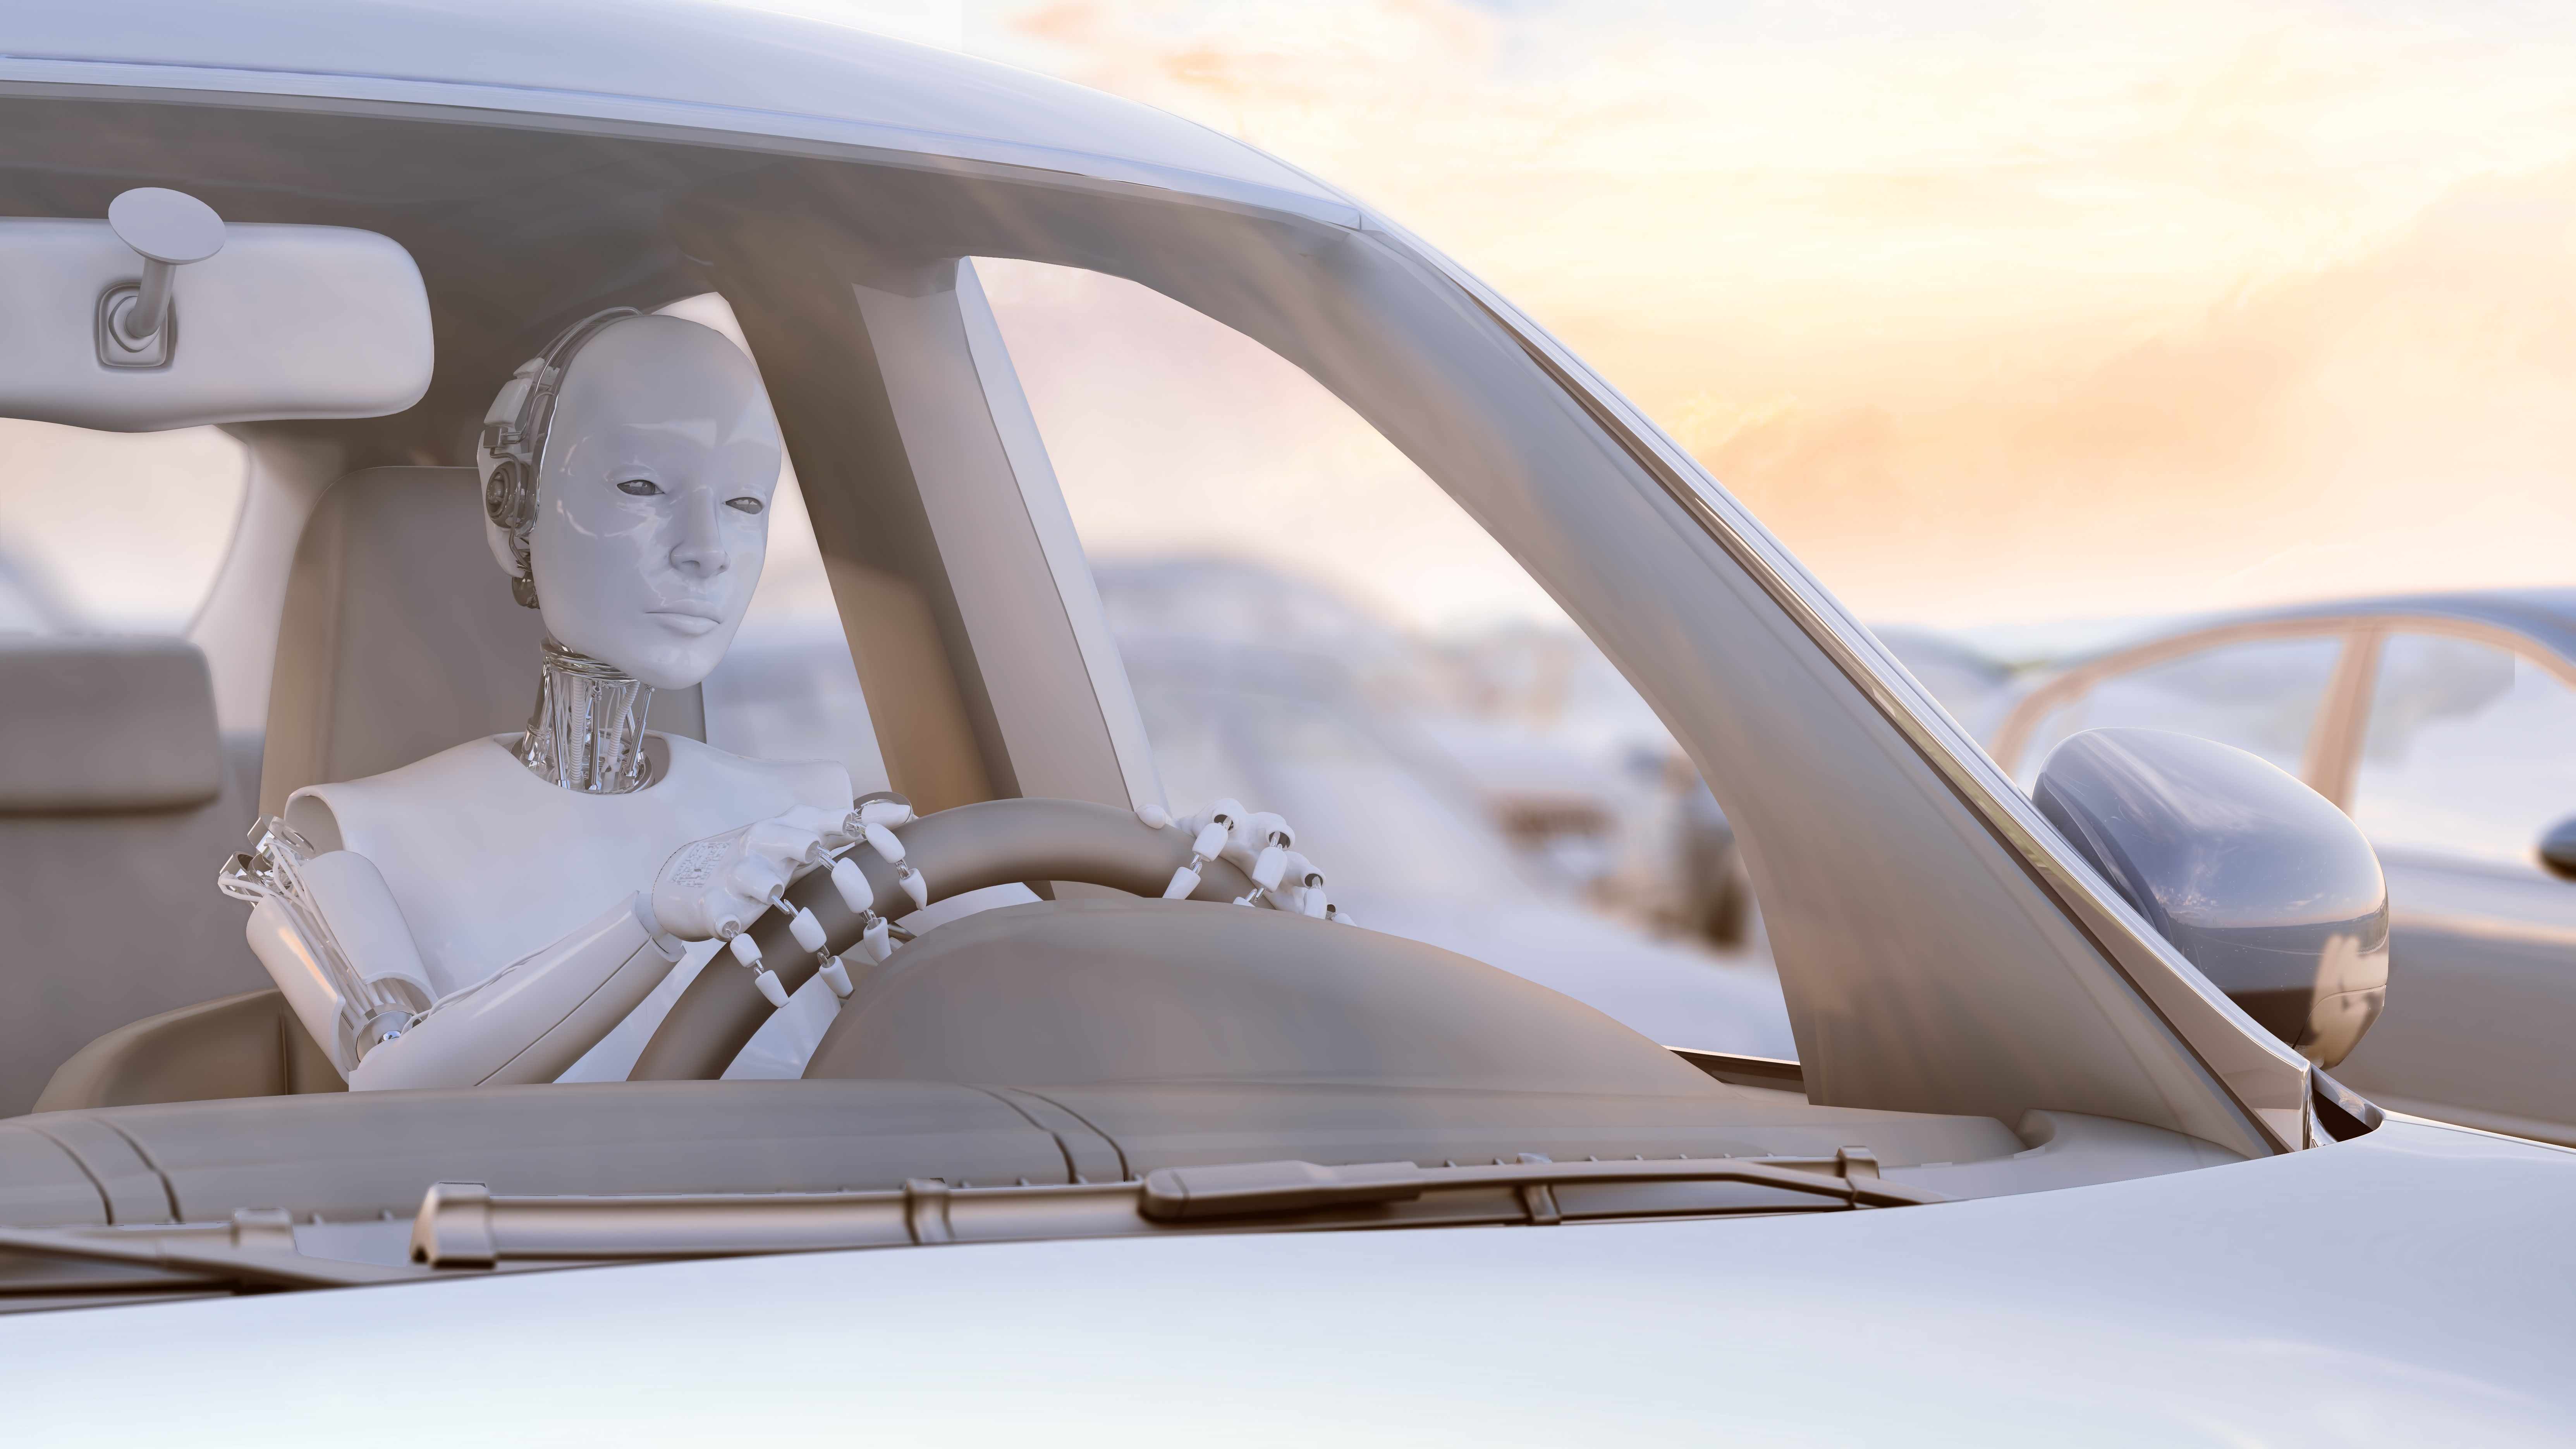 The Future of AI: Ethics & Morality Challenges for Emotion-Enabled Cars